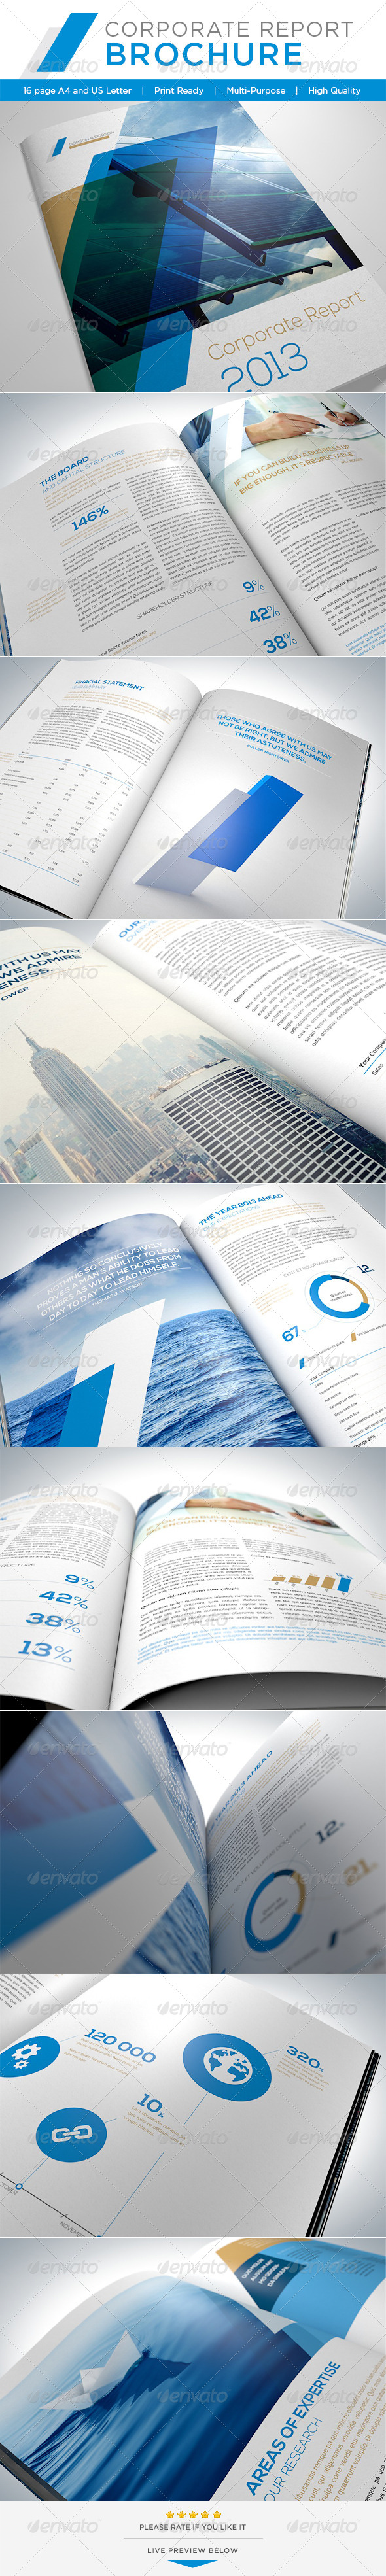 Corporate Report Brochure - Brochures Print Templates